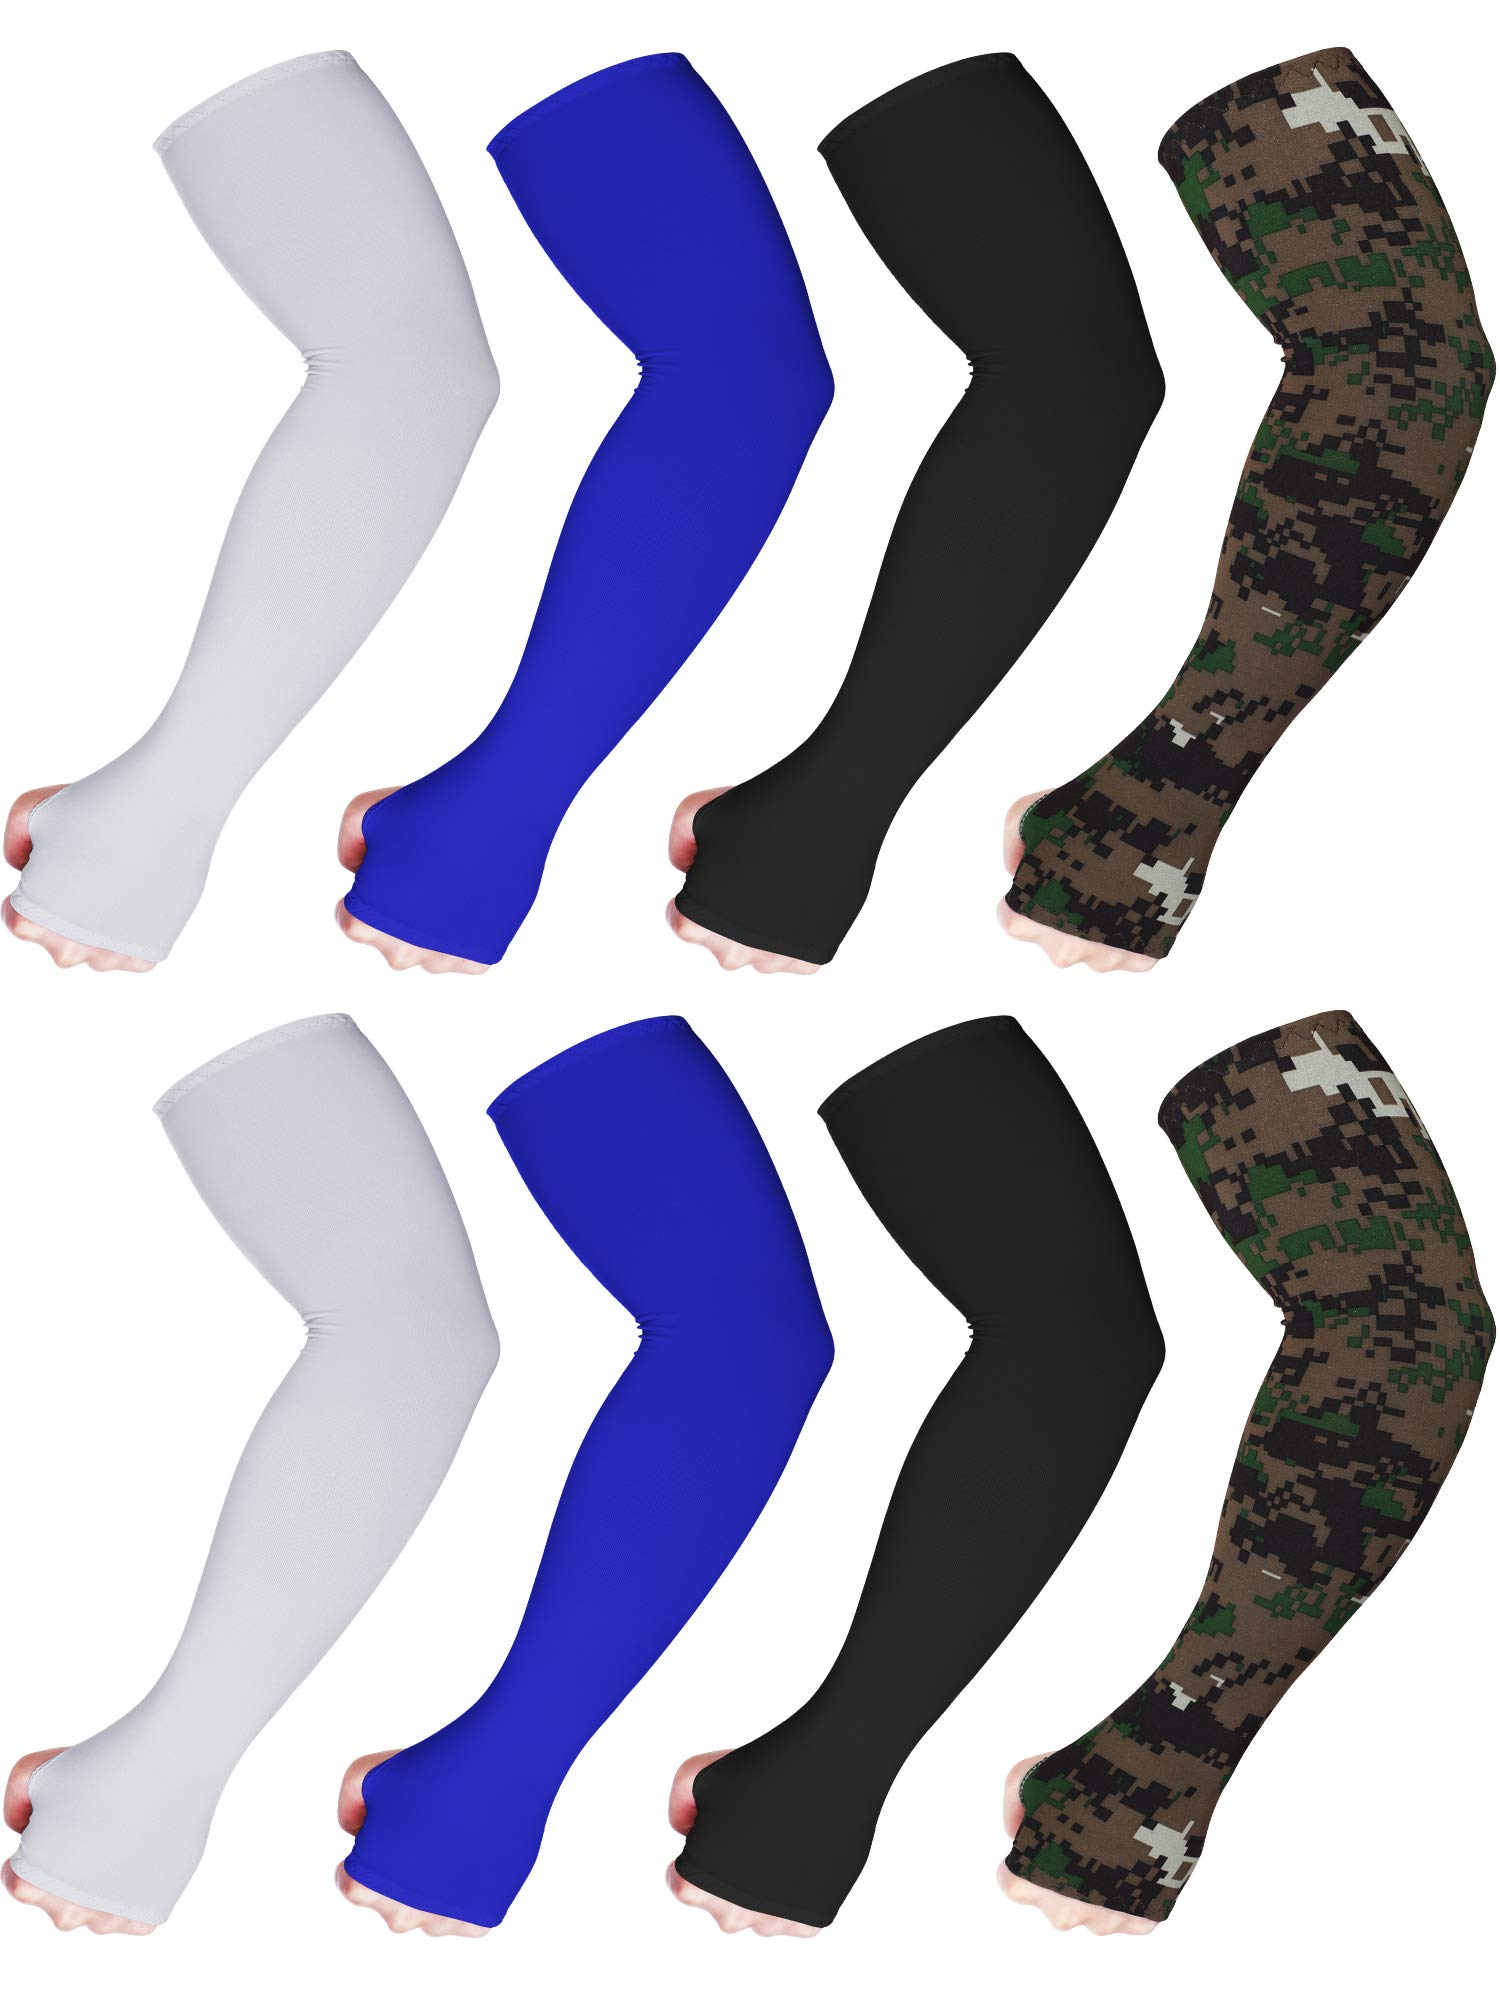 Bememo 8 Pairs Unisex UV Sun Protection Arm Sleeves Ice Silk Arm Cooling Sleeves by Bememo